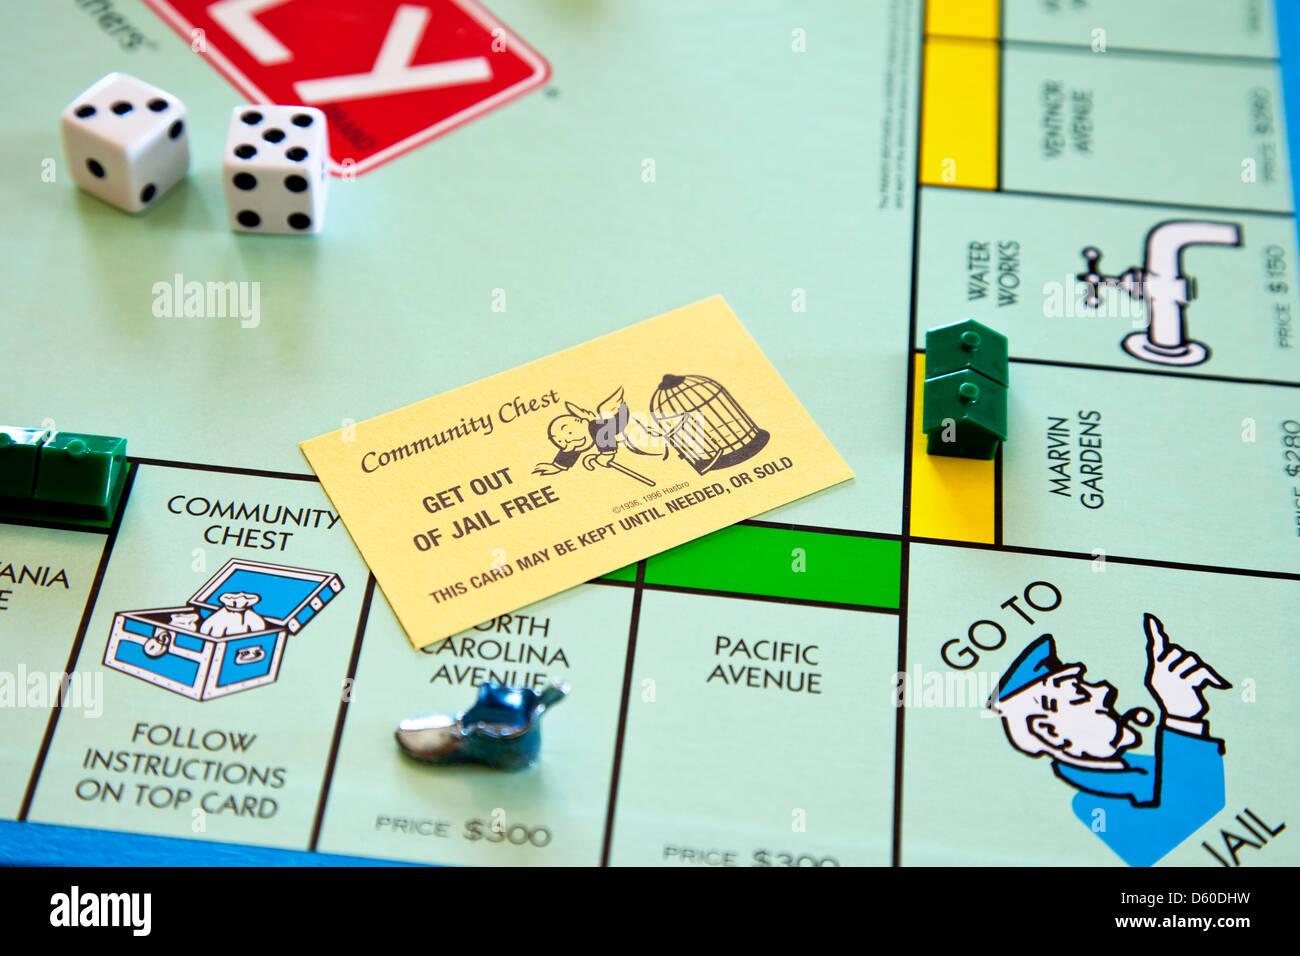 Monopoly board game - get out of jail free card - Stock Image